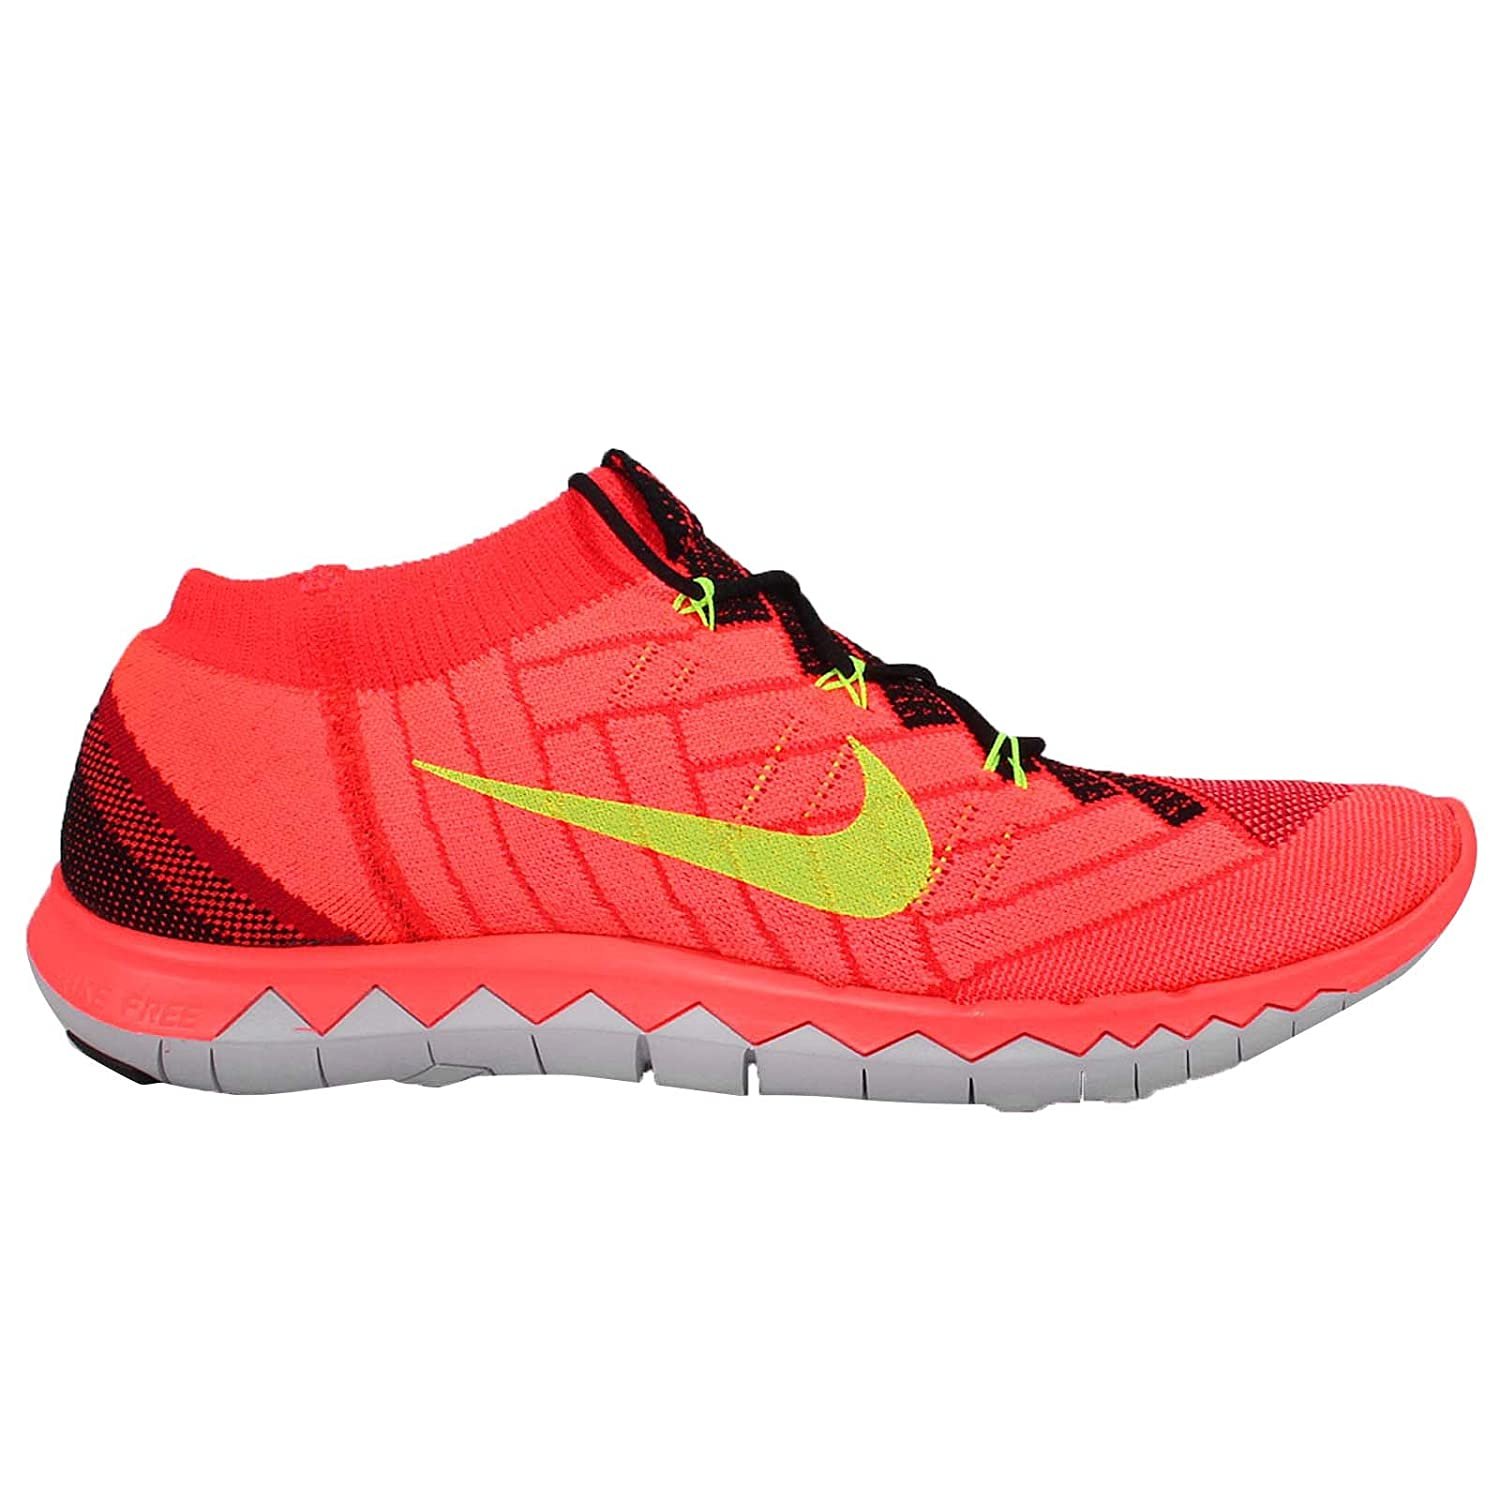 2a1f120b397 ... store amazon nike free 3.0 flyknit men round toe synthetic running shoe  road running . d81c8